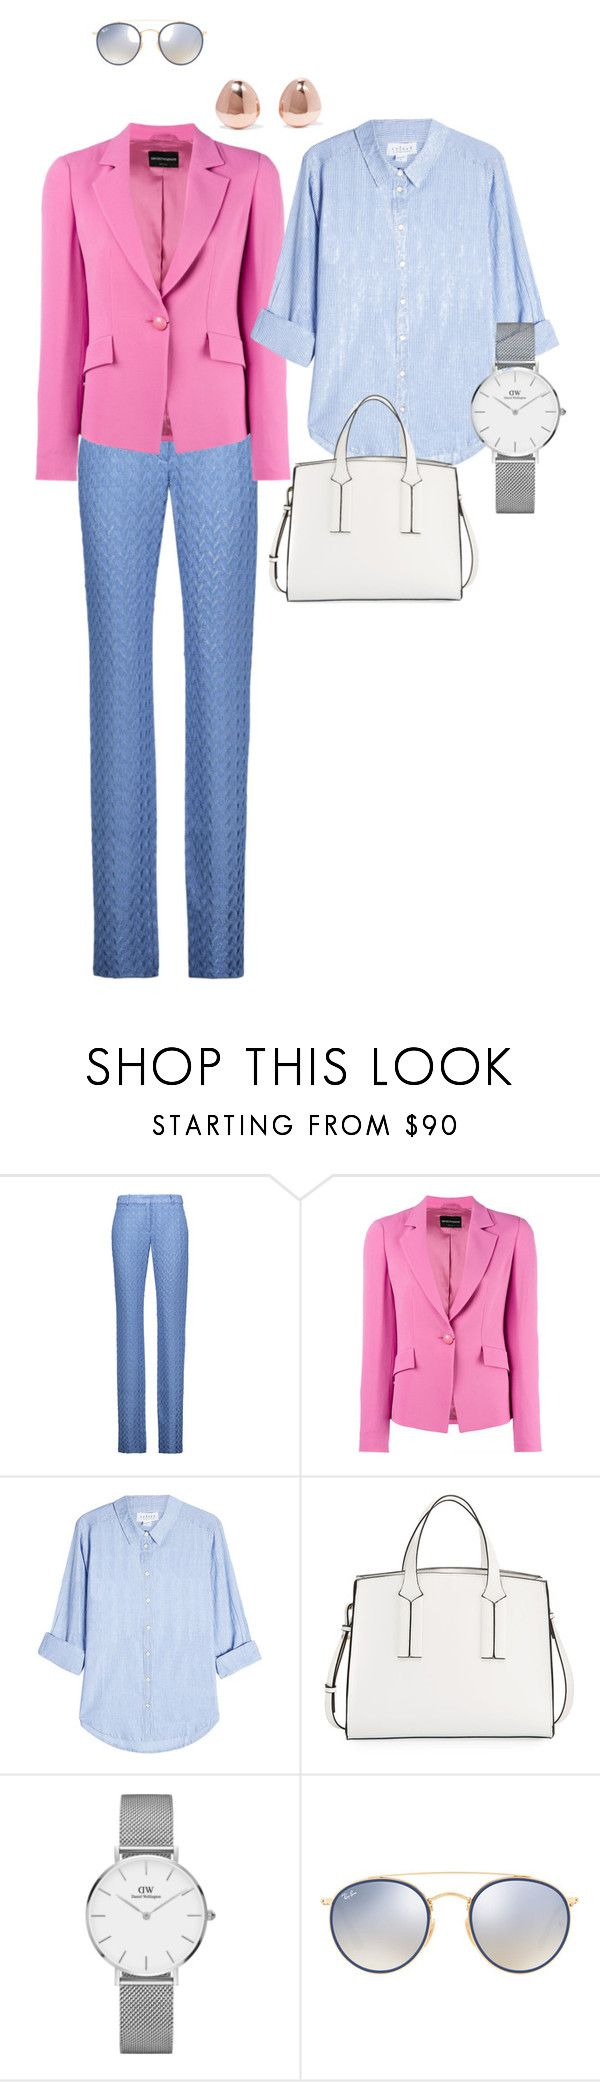 """Pink&blue"" by markova-elena on Polyvore featuring мода, Missoni, Emporio Armani, Velvet, French Connection, Daniel Wellington, Ray-Ban и Monica Vinader"